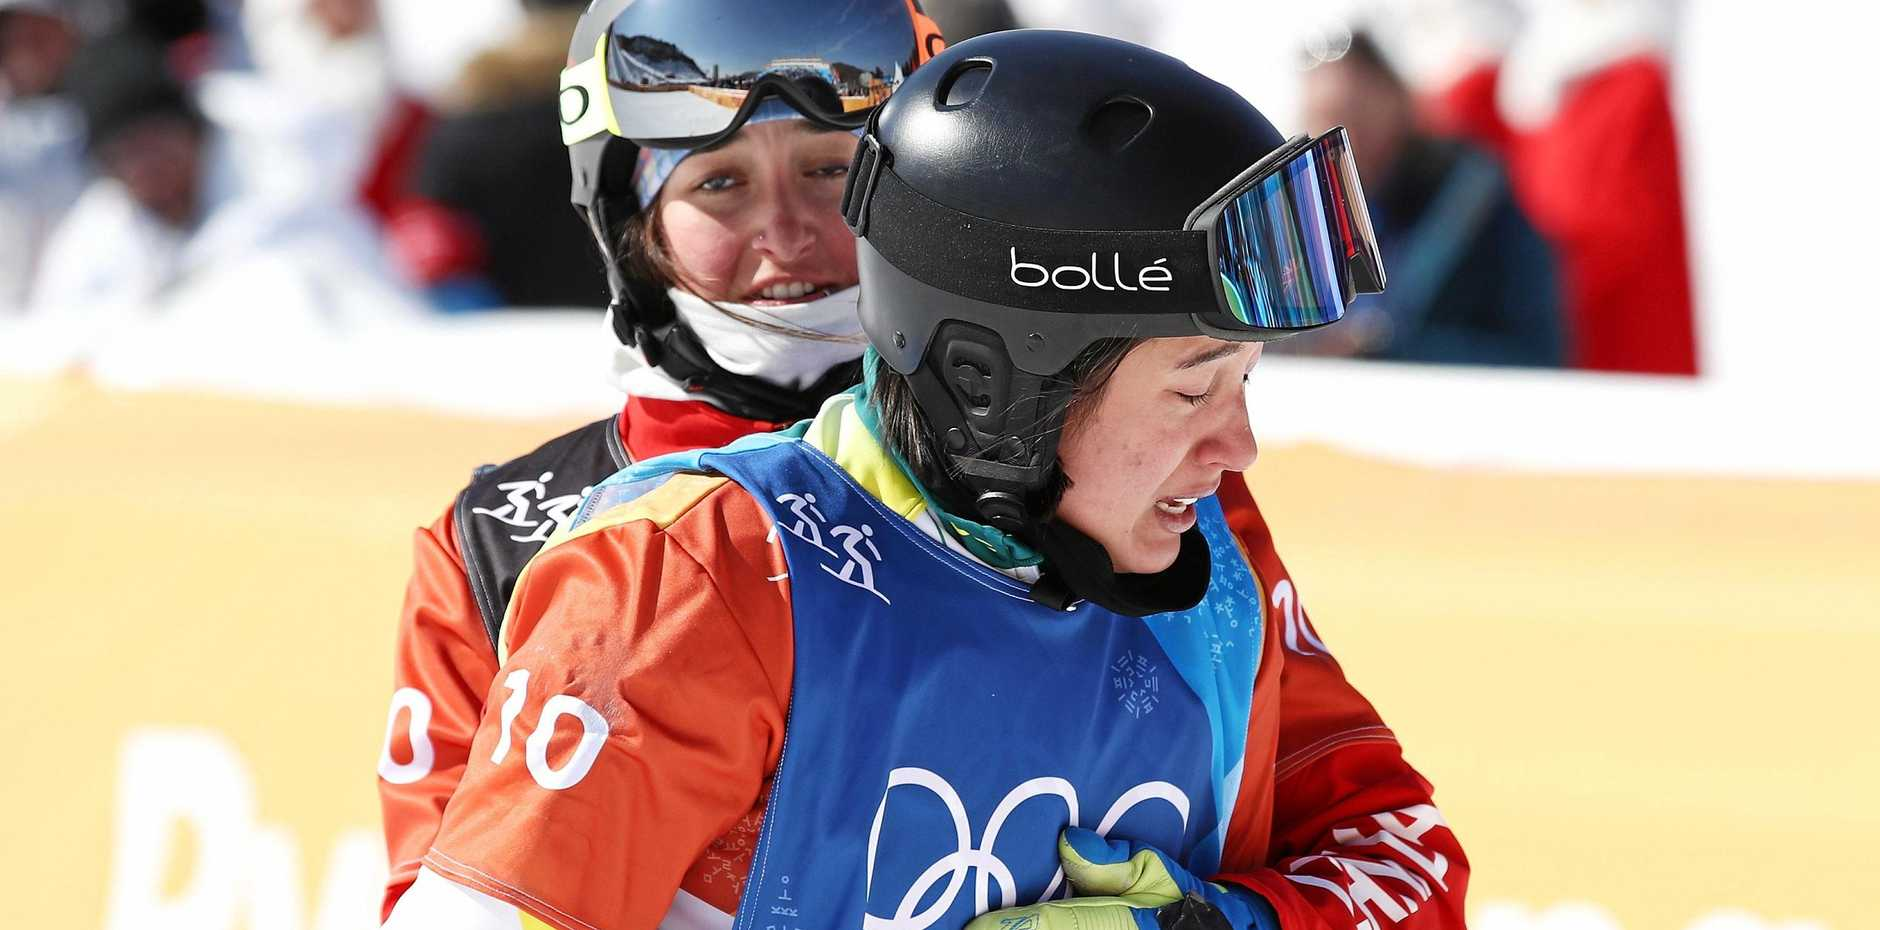 SHATTERED: Belle Brockhoff after injuring her knee in the snowboard cross small final.